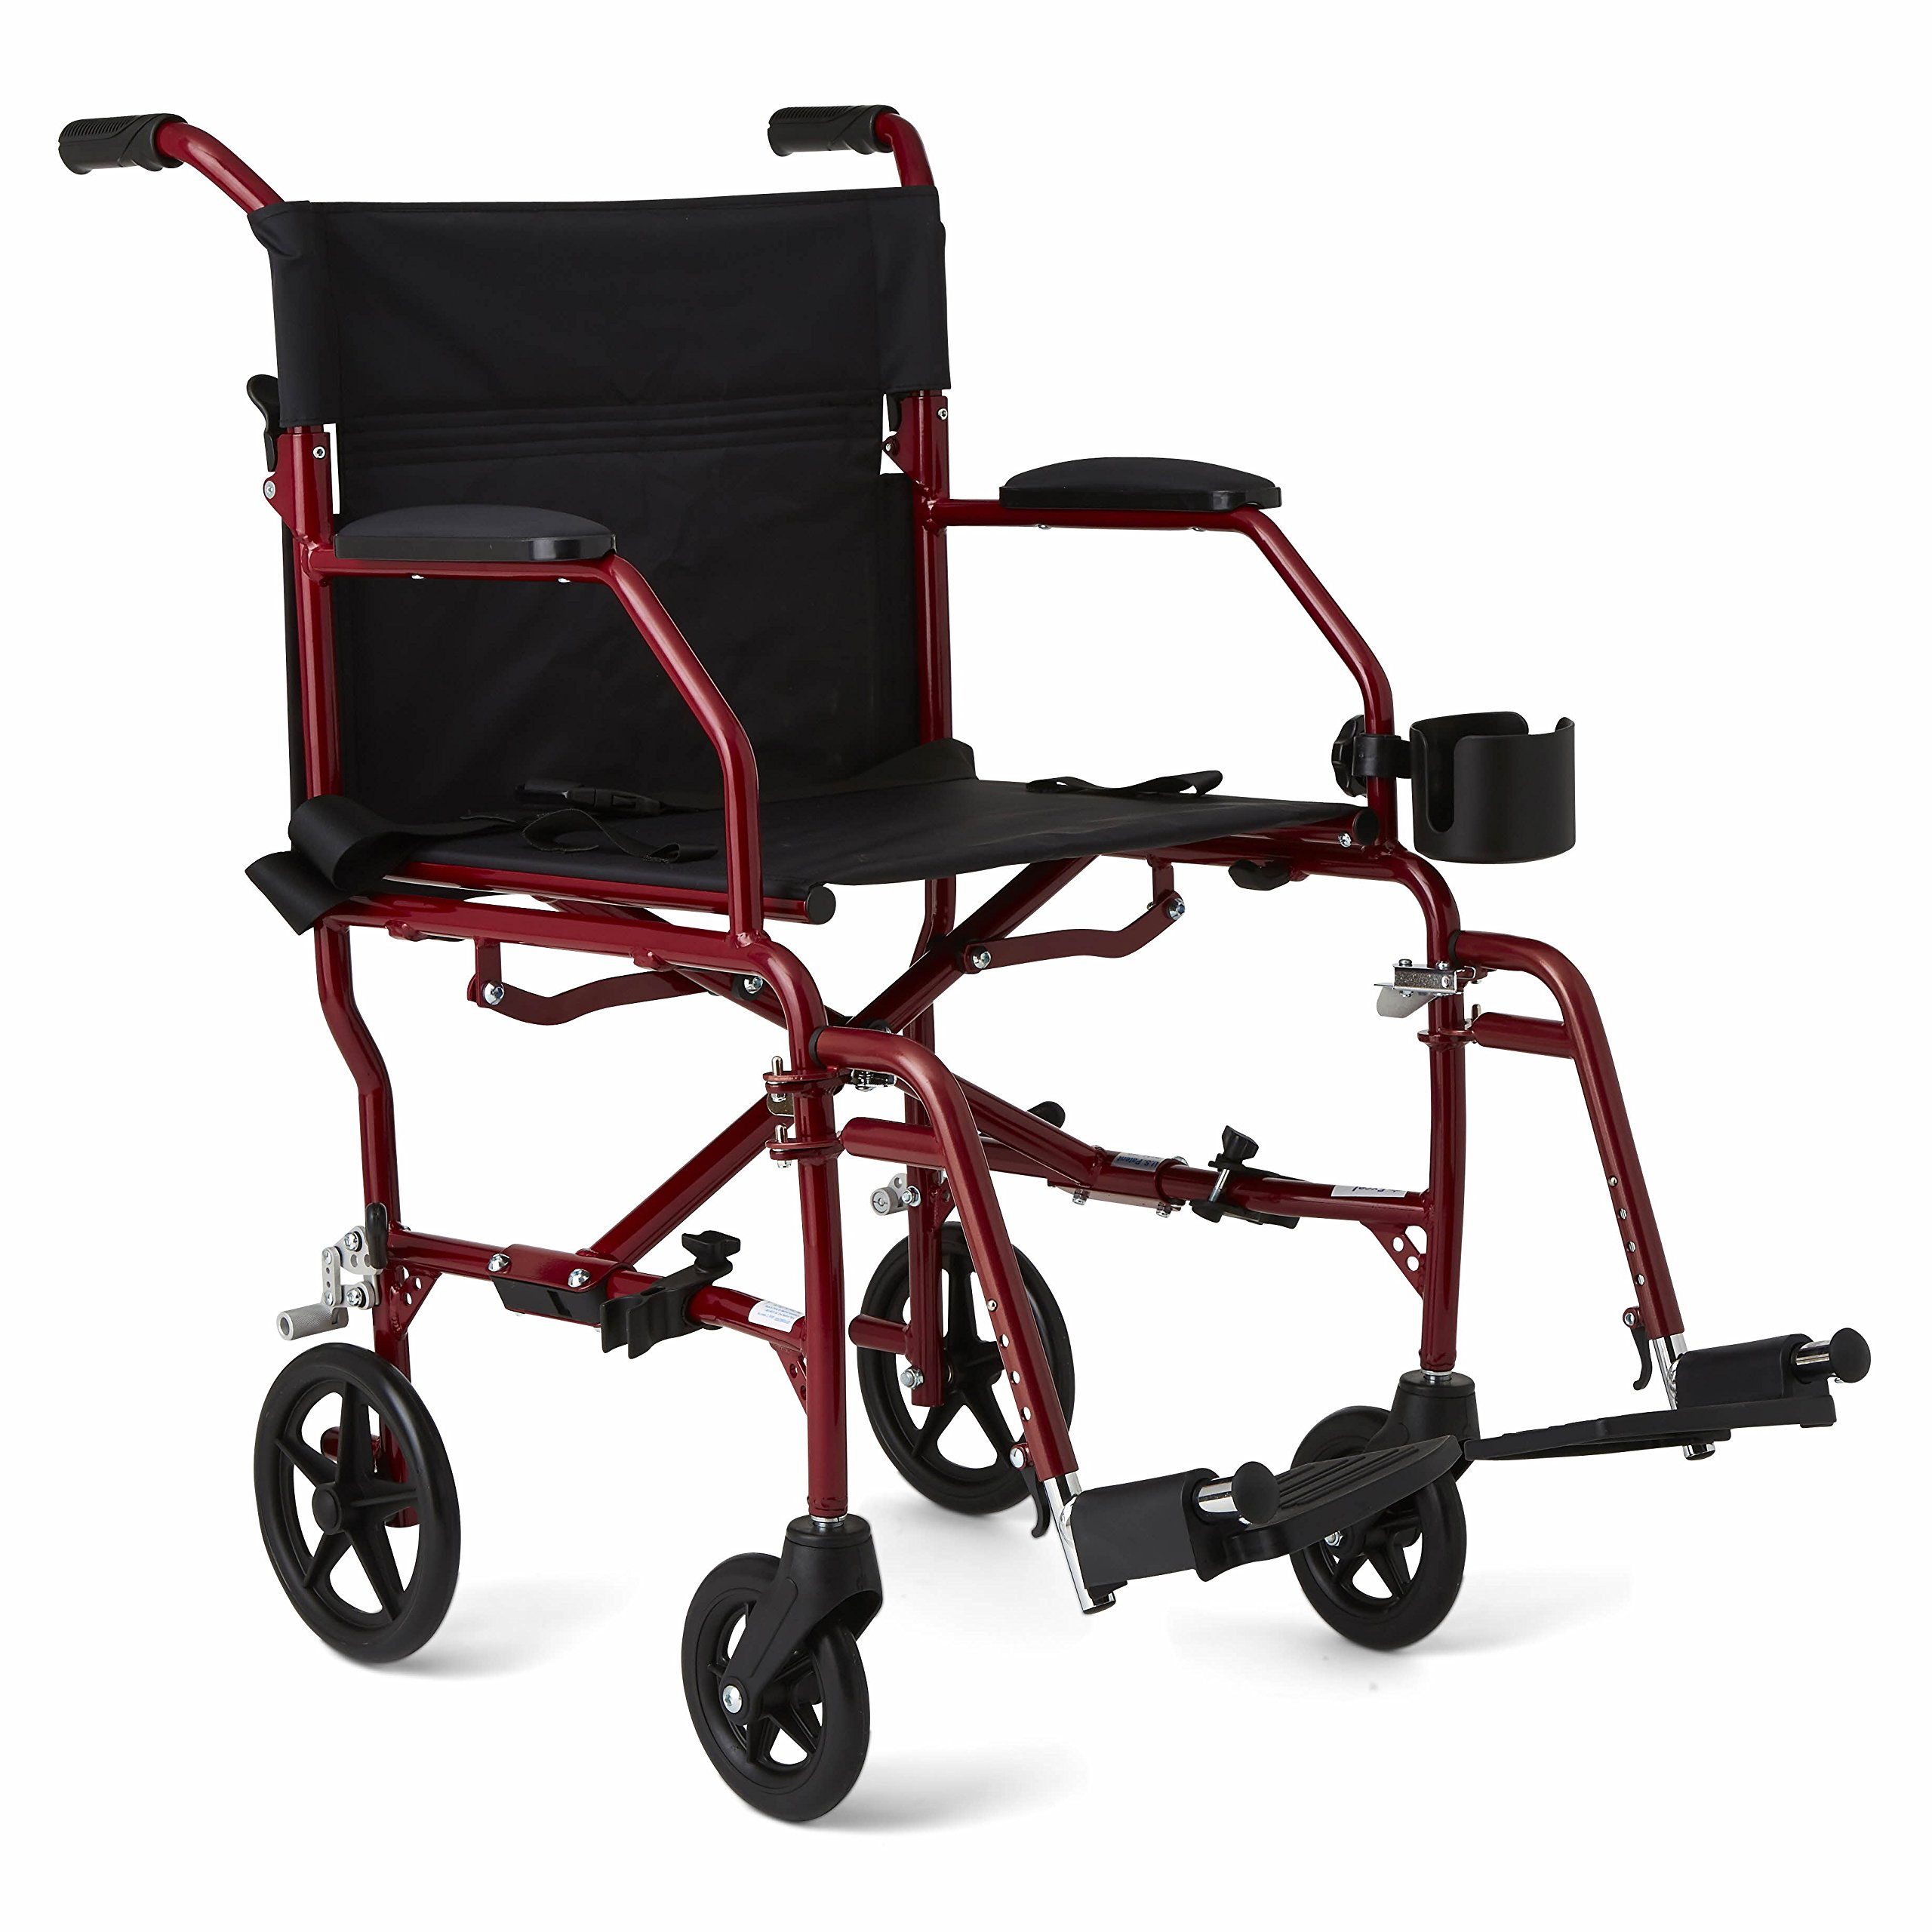 """Medline Ultralight Transport Chair, 19"""" Wide Seat, Permanent Desk-Length Arms, Swing Away Footrests, Red Frame"""